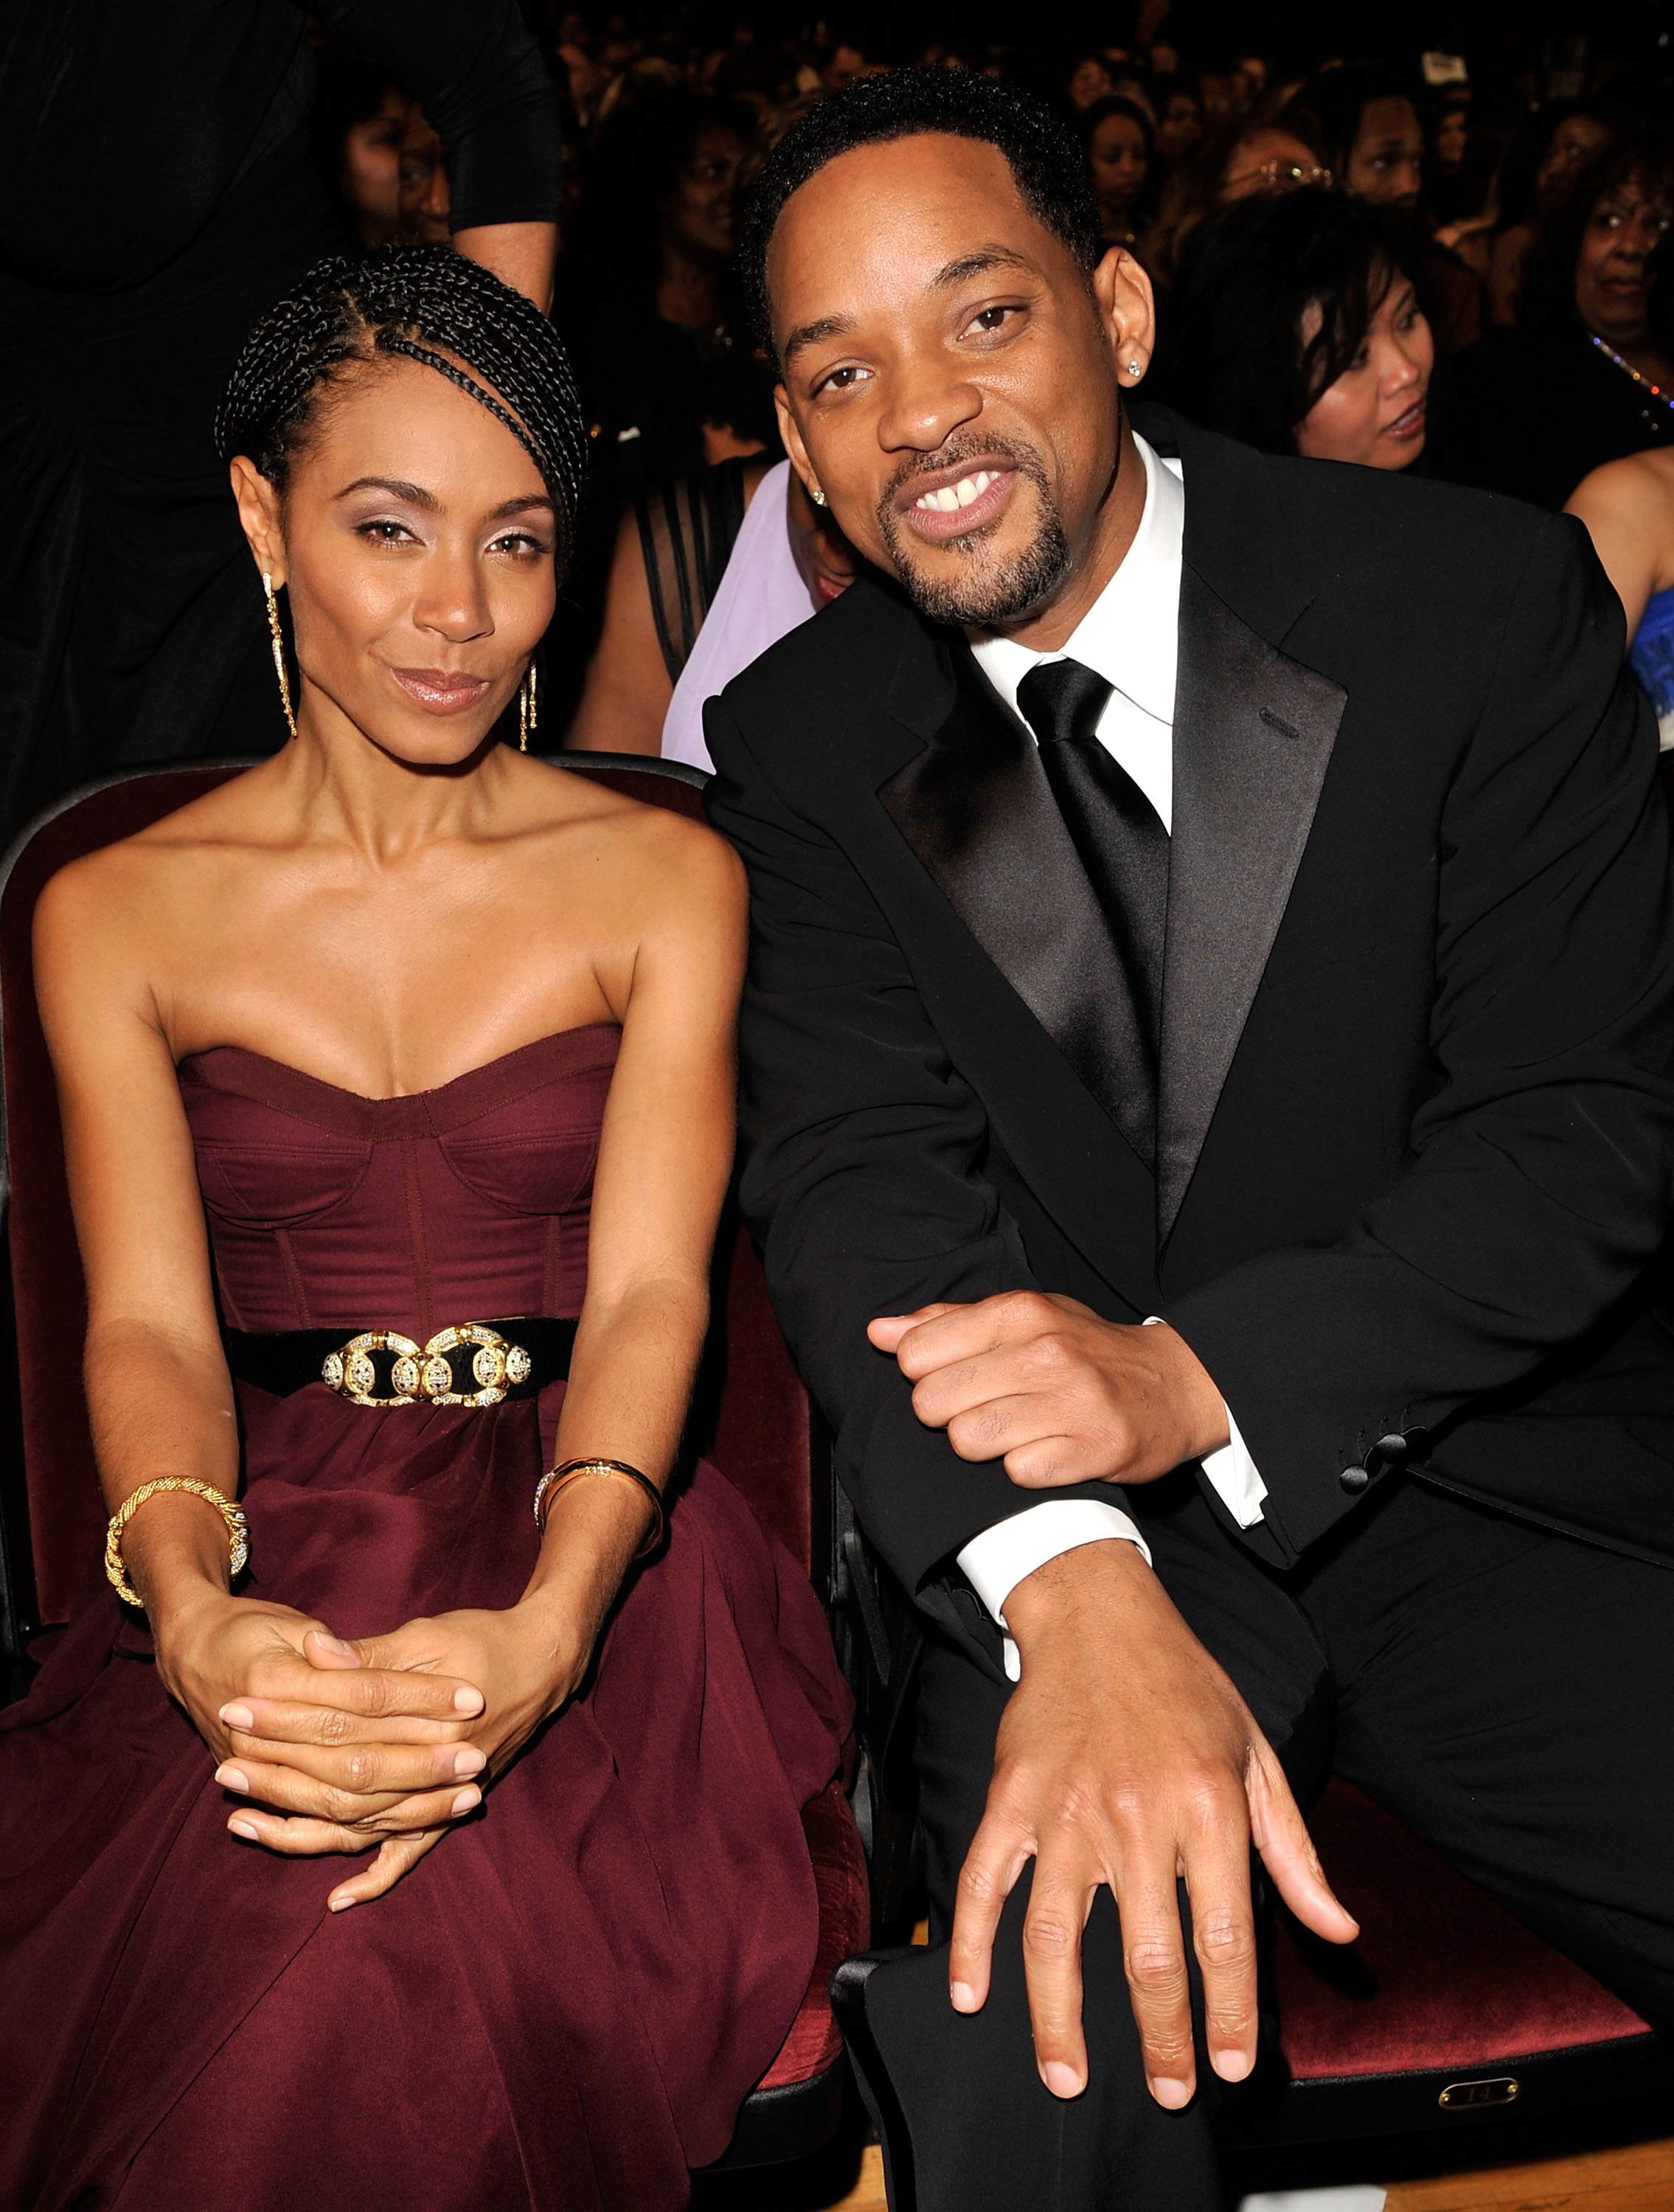 Image Credits: Getty Images | Will and Jada questioned President Obama about aliens